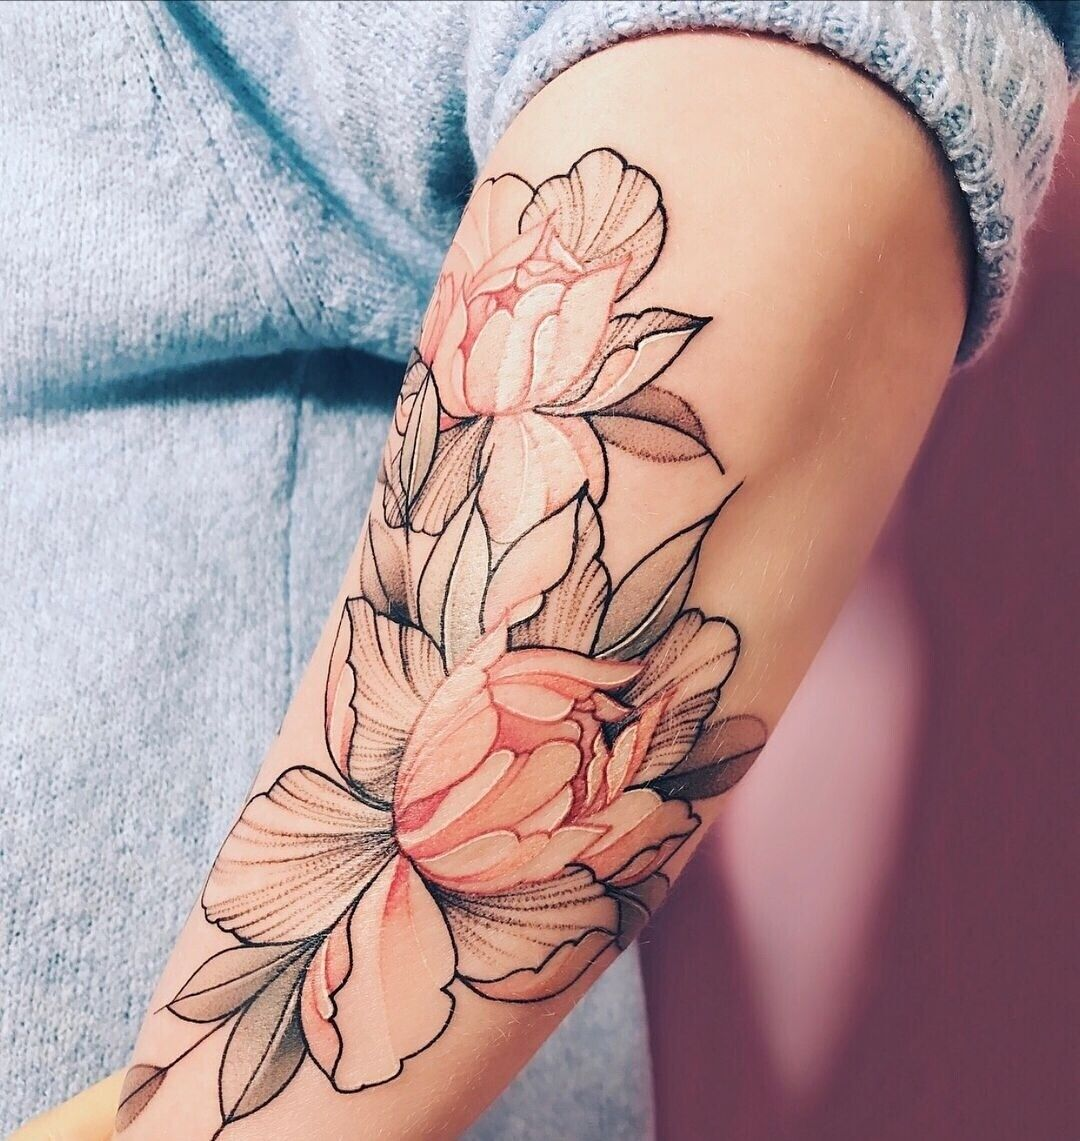 Love The Soft Color Tattoos Inspirational Tattoos Flower Tattoo Sleeve